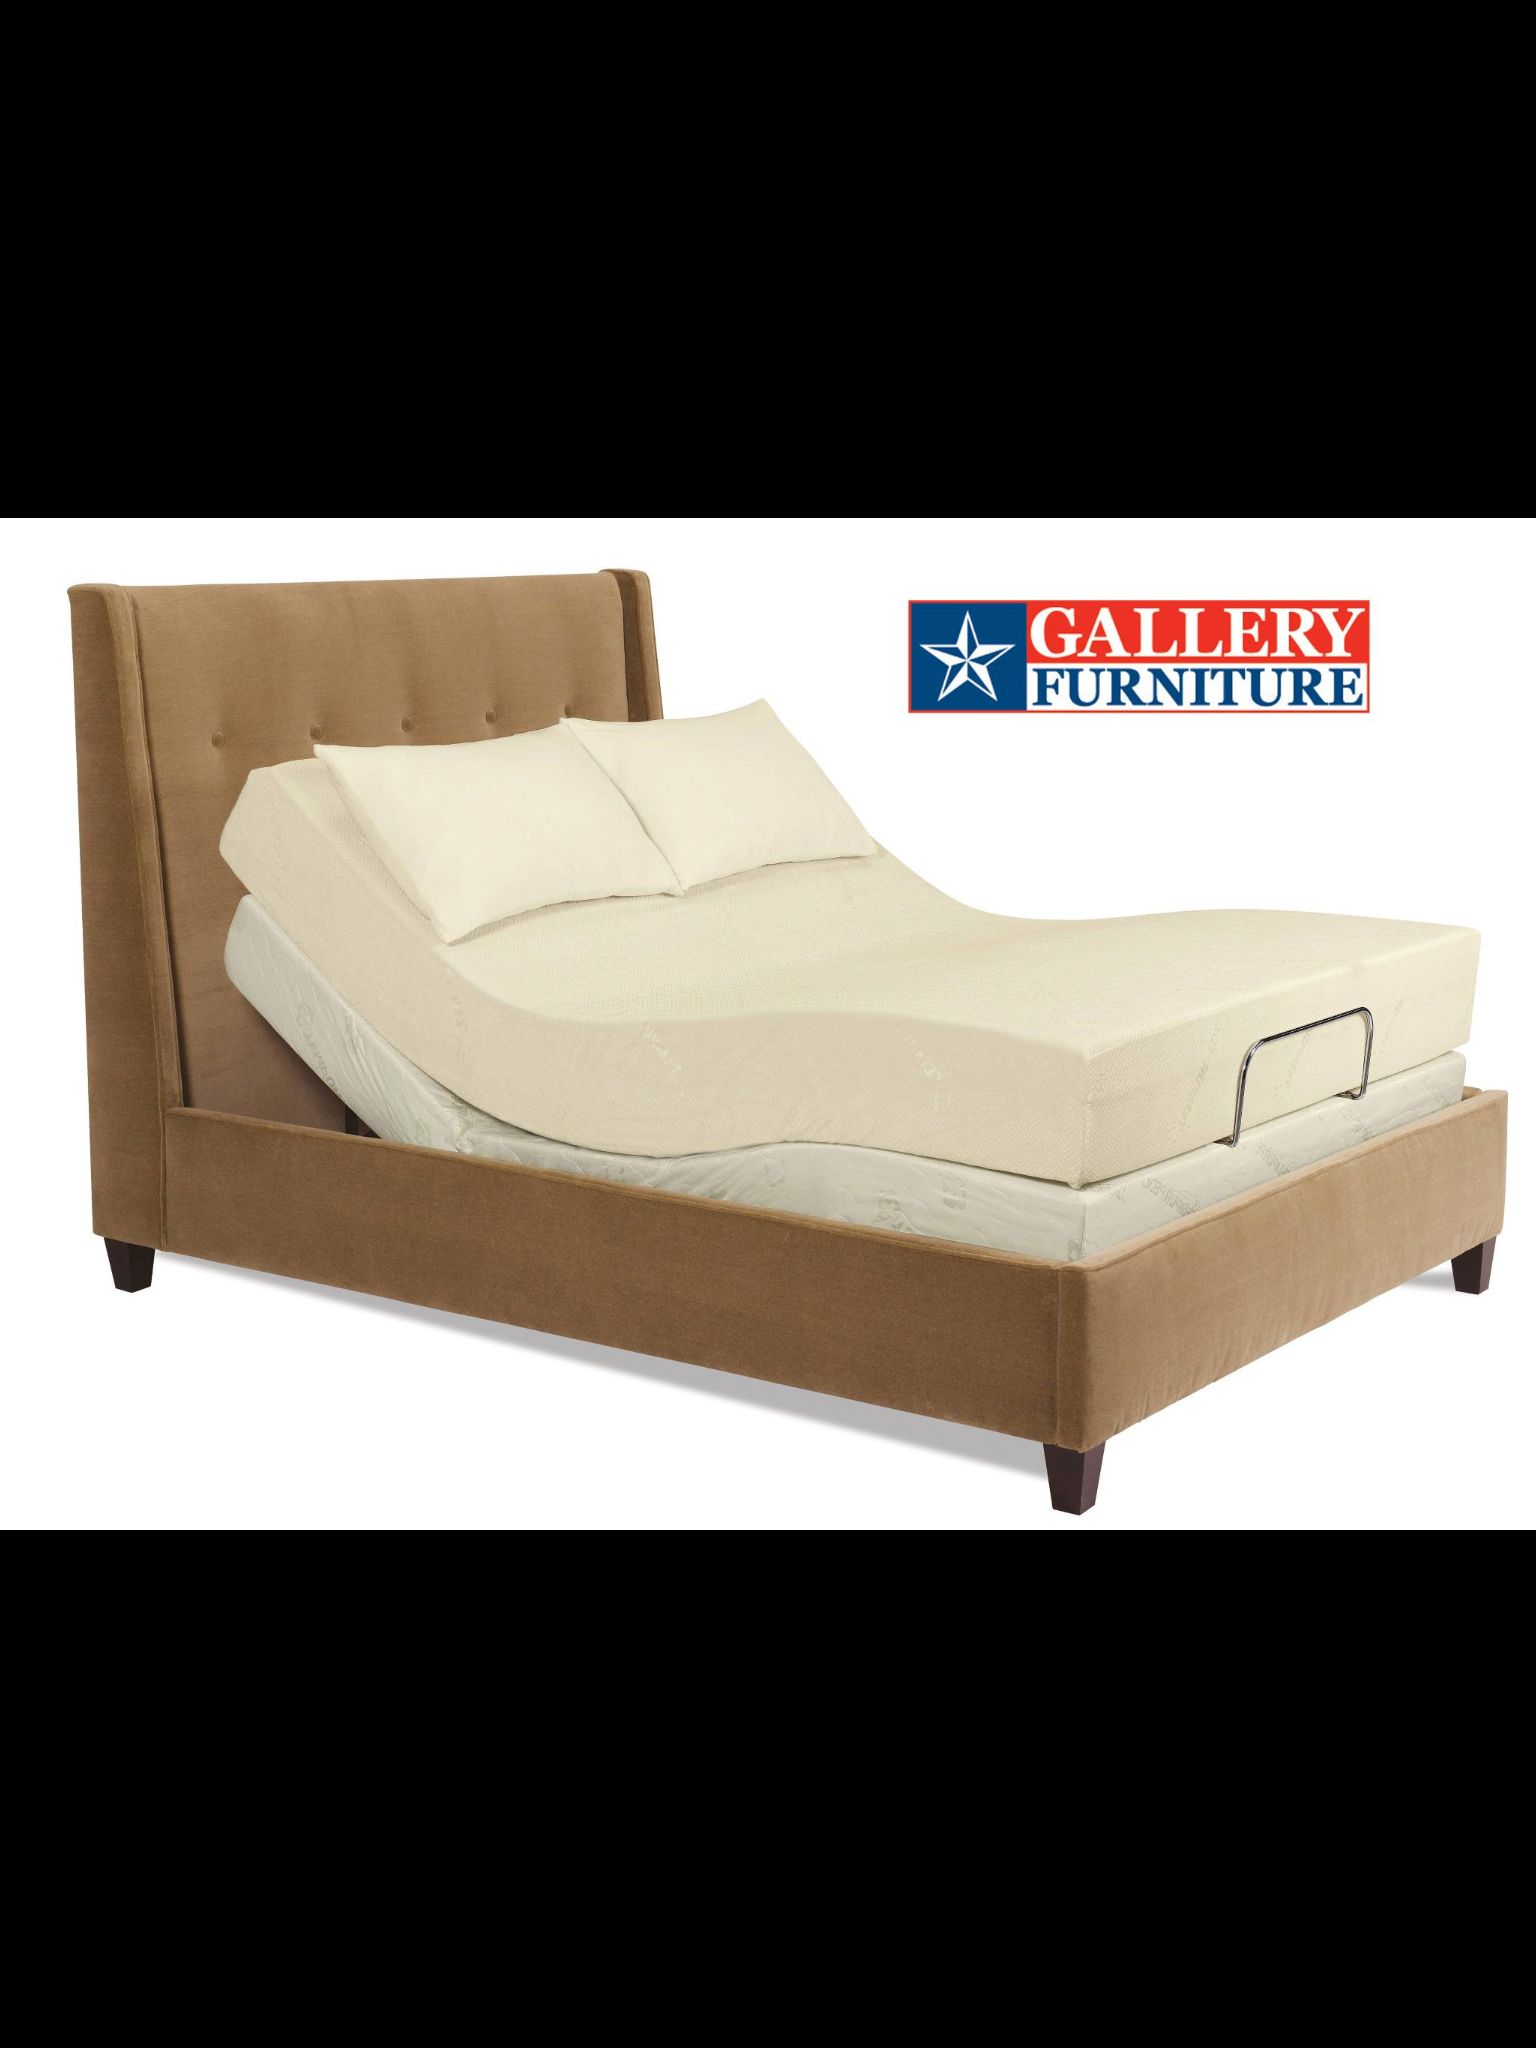 Gallery Furniture Houston Bunk Beds